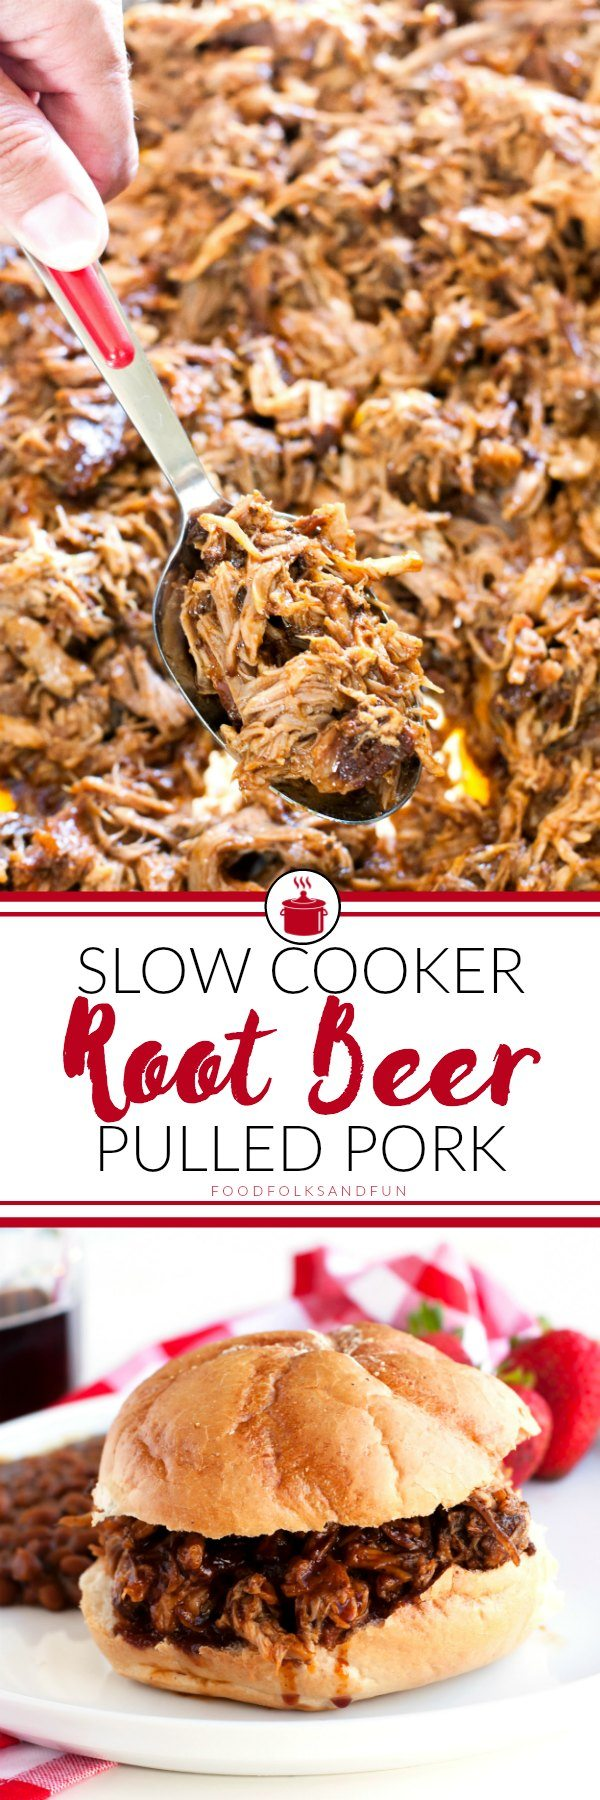 This Slow Cooker Root Beer Pulled Pork recipe is sweet, tangy, and completely delicious. It's perfect for entertaining, and the root beer barbecue sauce alone is worth the make! via @foodfolksandfun